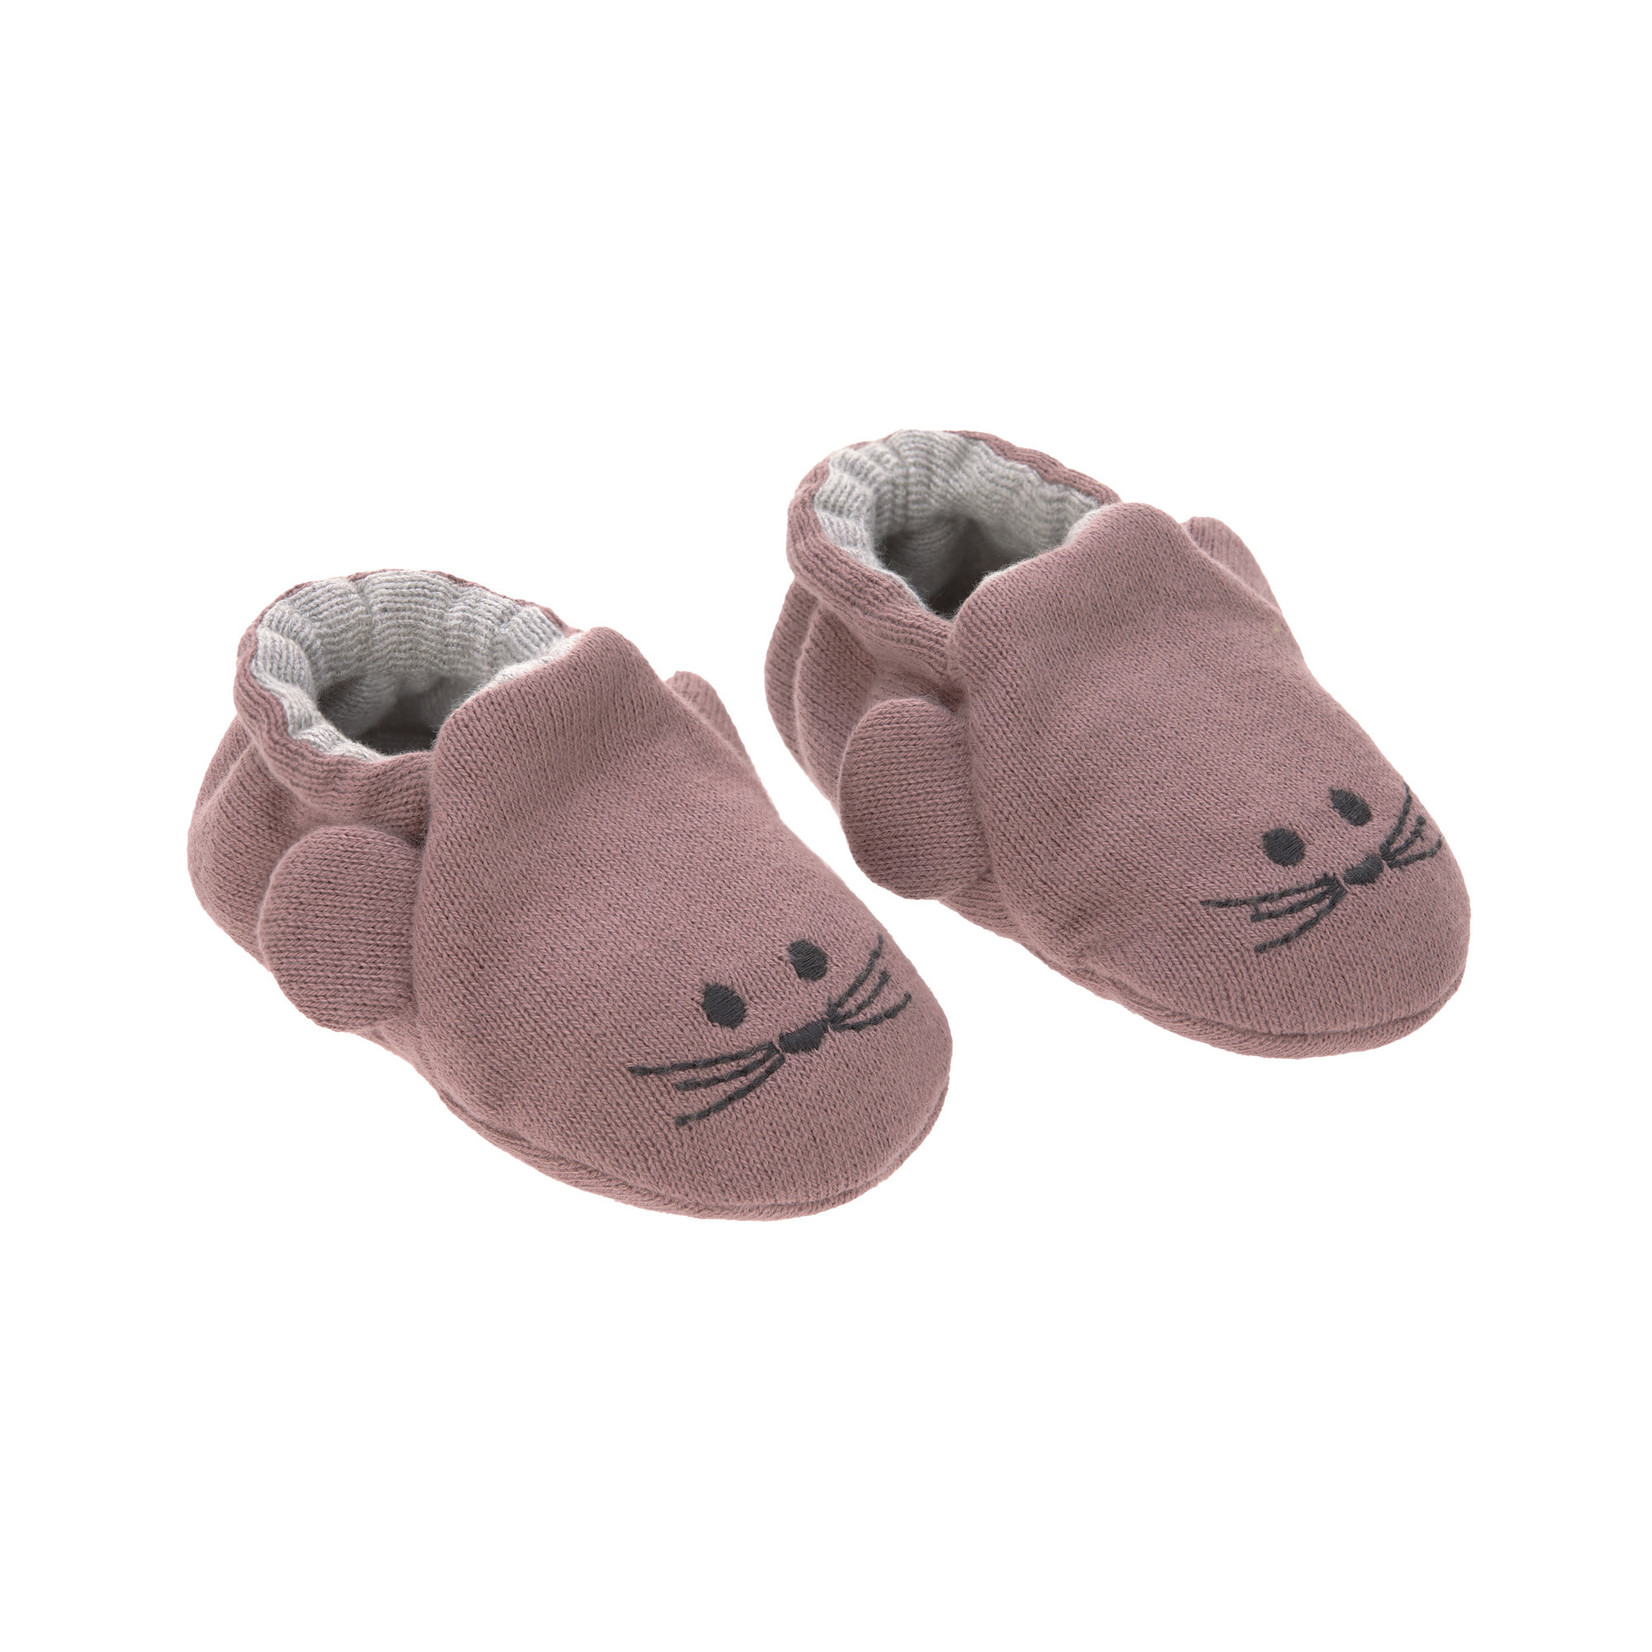 Lässig Baby Shoes GOTS Little Chums Mouse, One Size